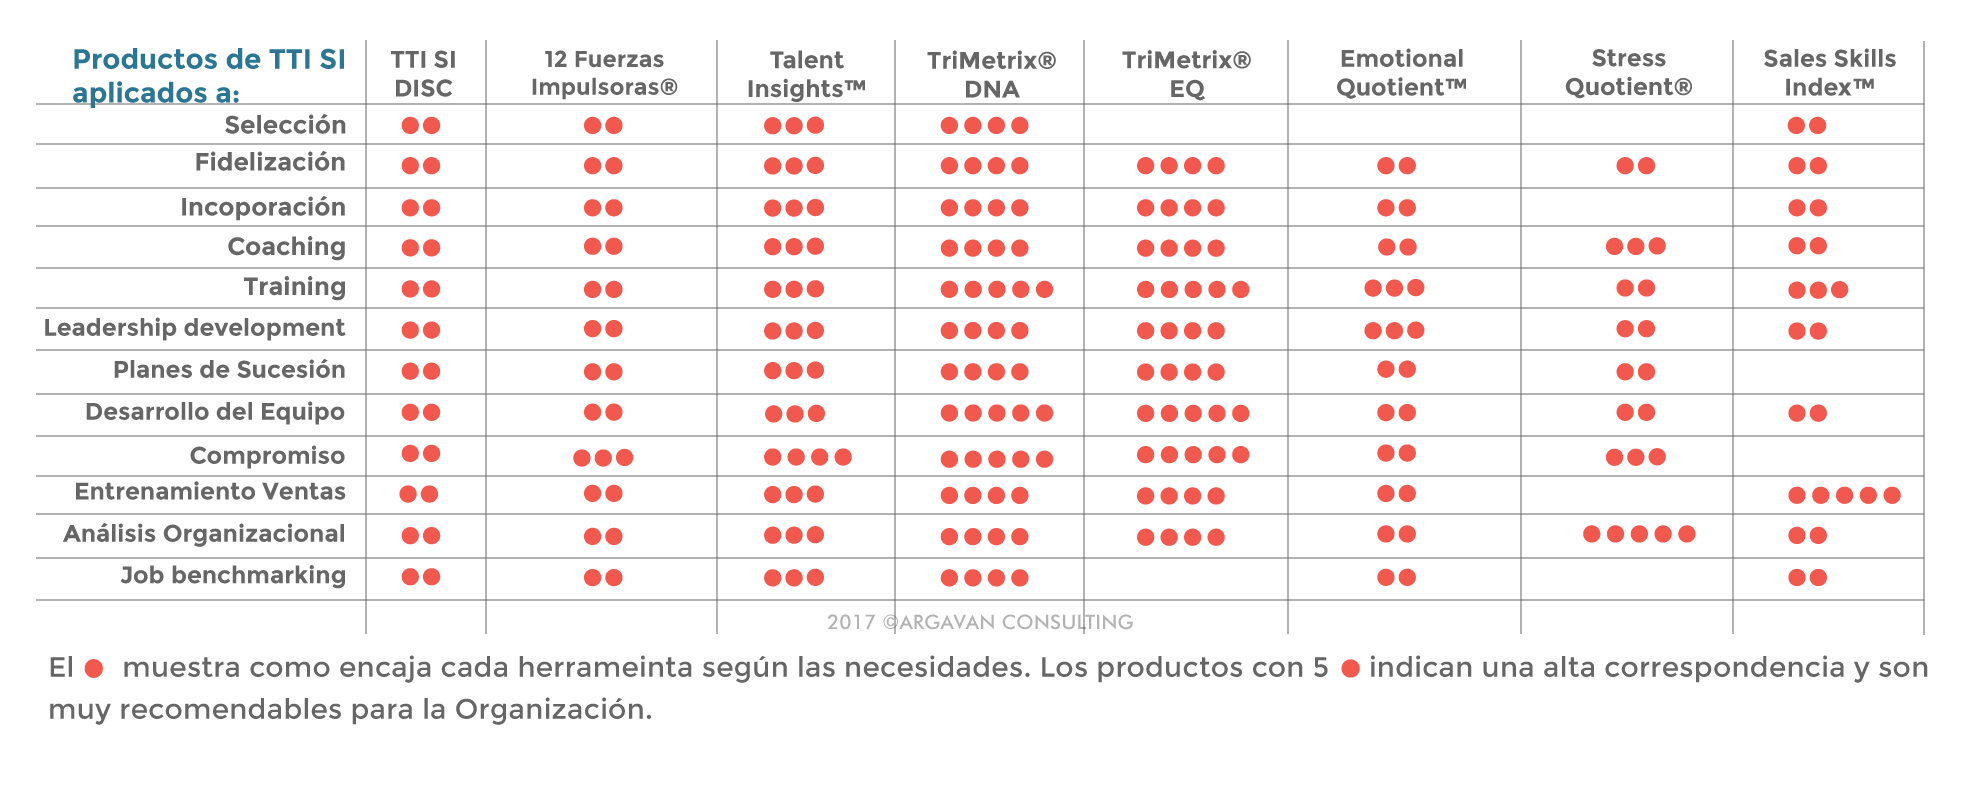 TTI SI Matrix de Productos